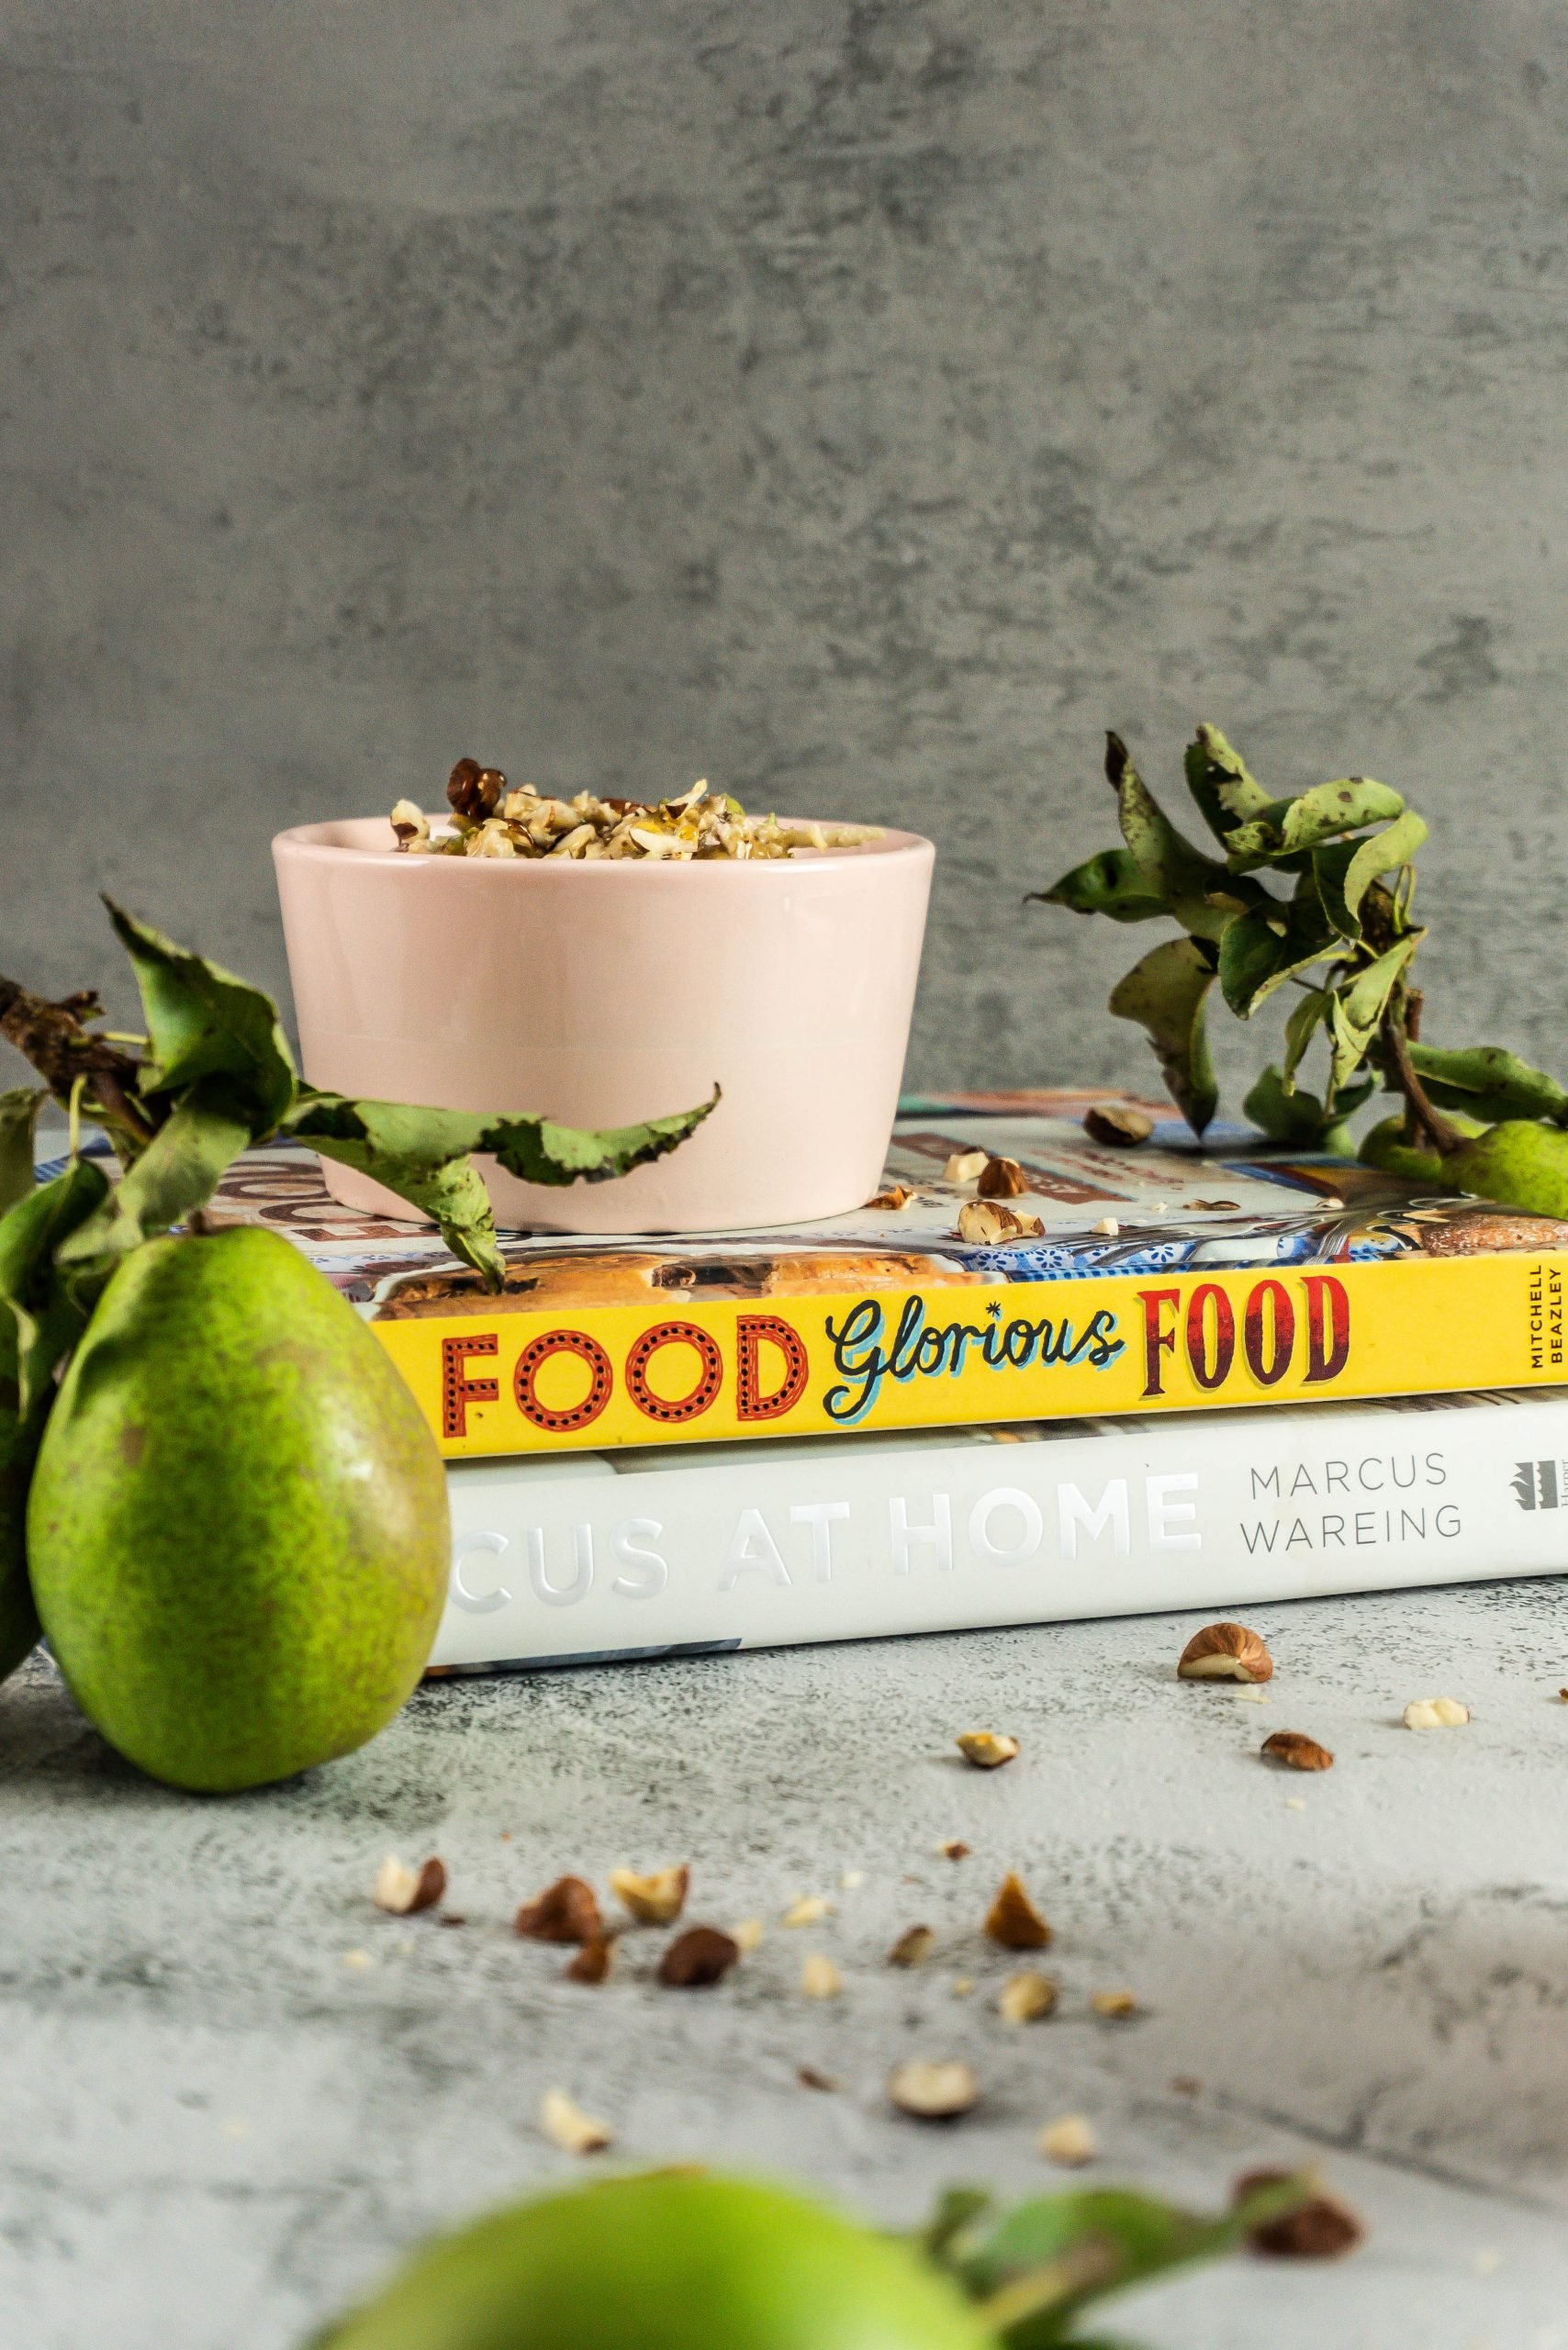 Bircher Muesli with pears and hazelnuts stacked on some books, surrounded by pears